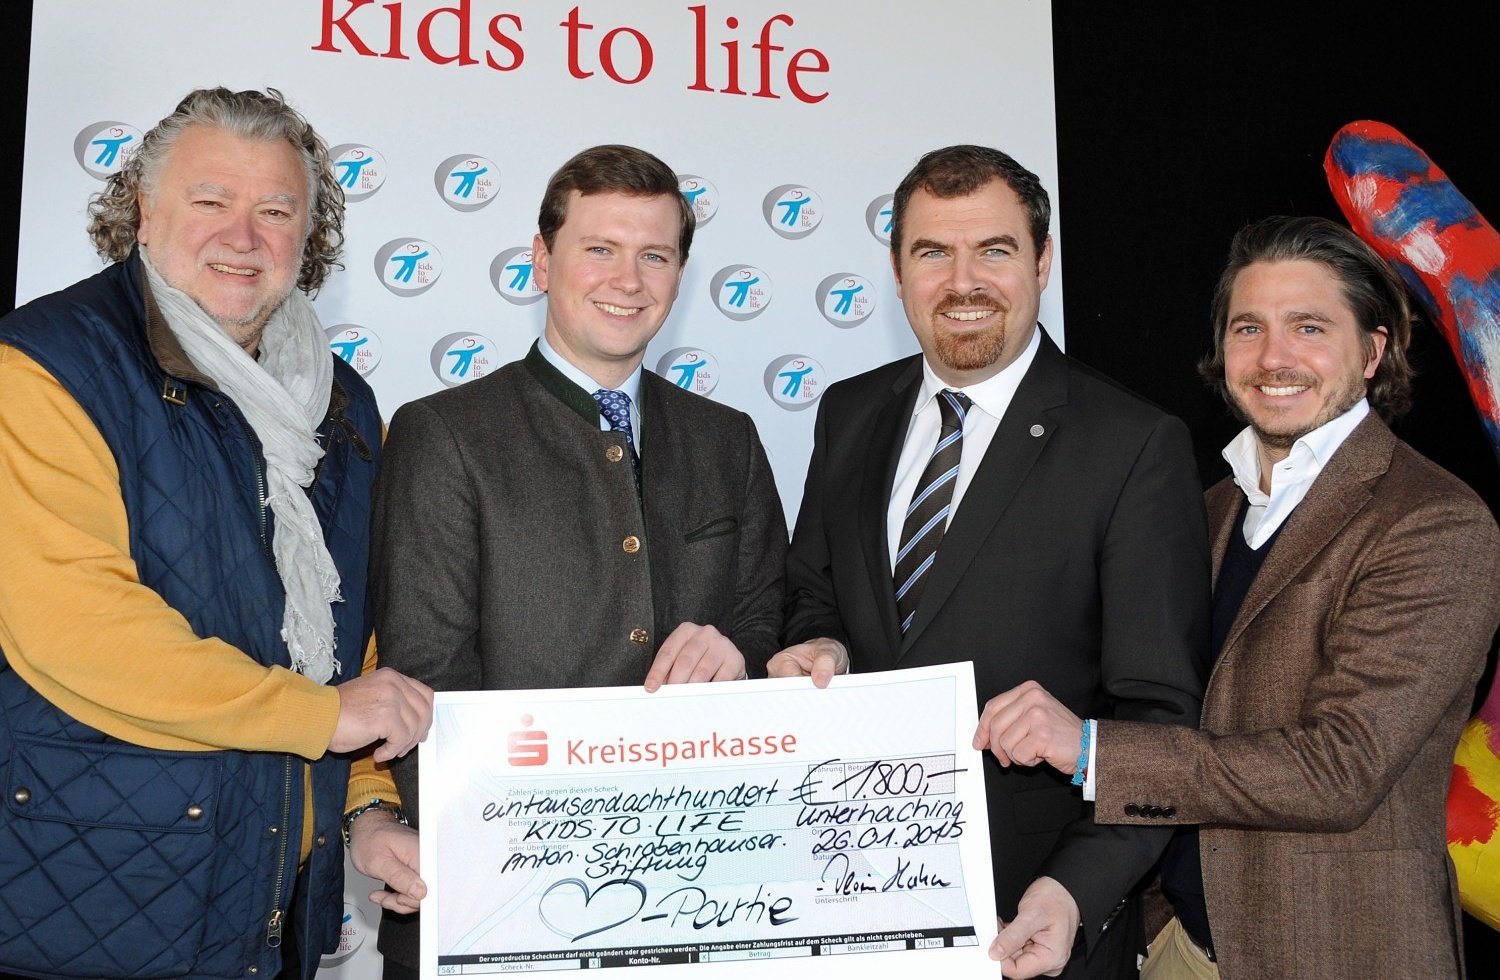 """Herzpartie e. V."" spendet 1.800,- Euro an kids to life"